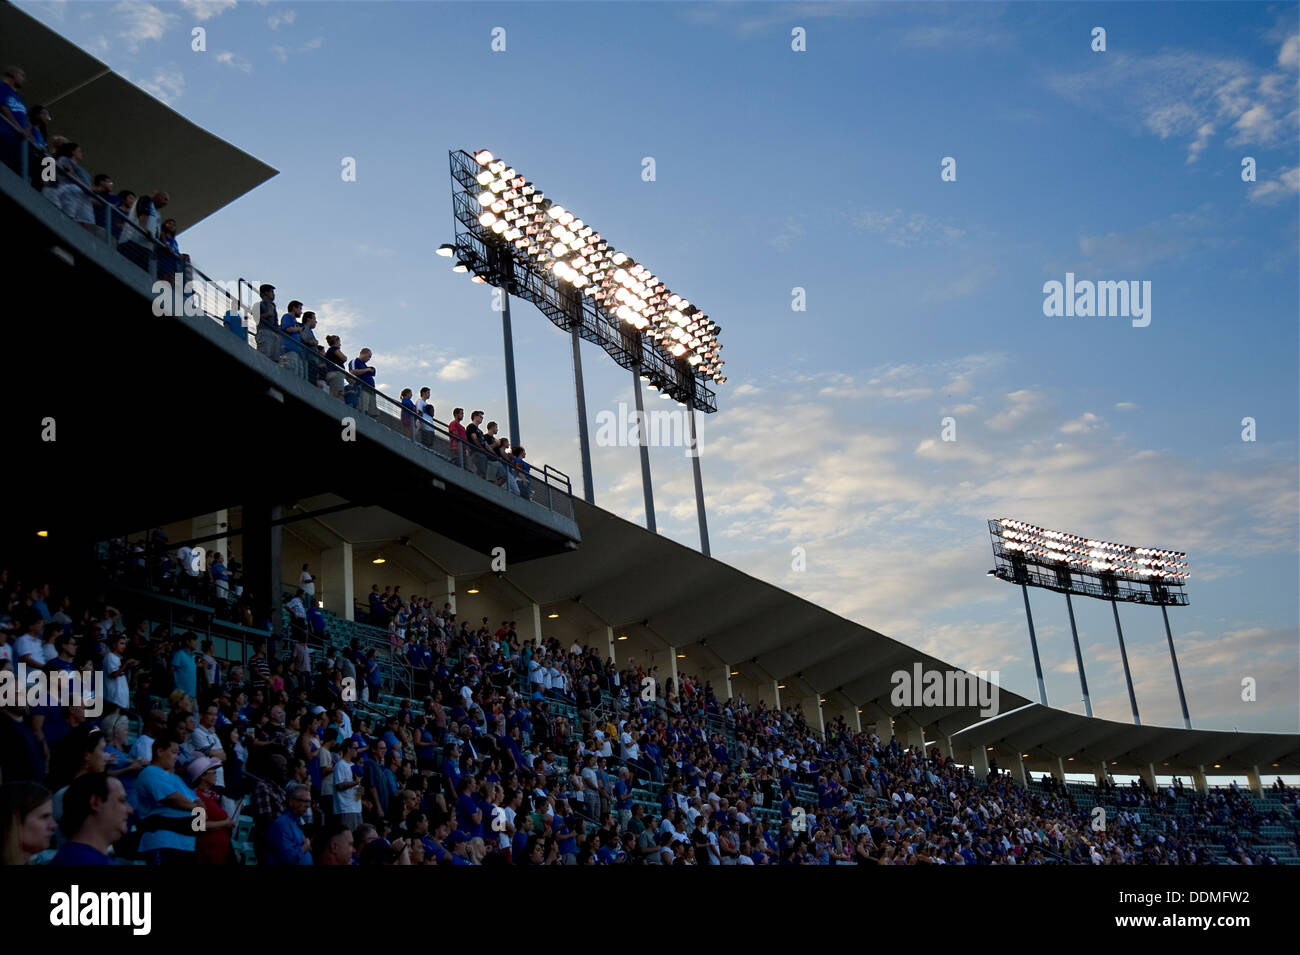 Crowd at a sporting event - Stock Image